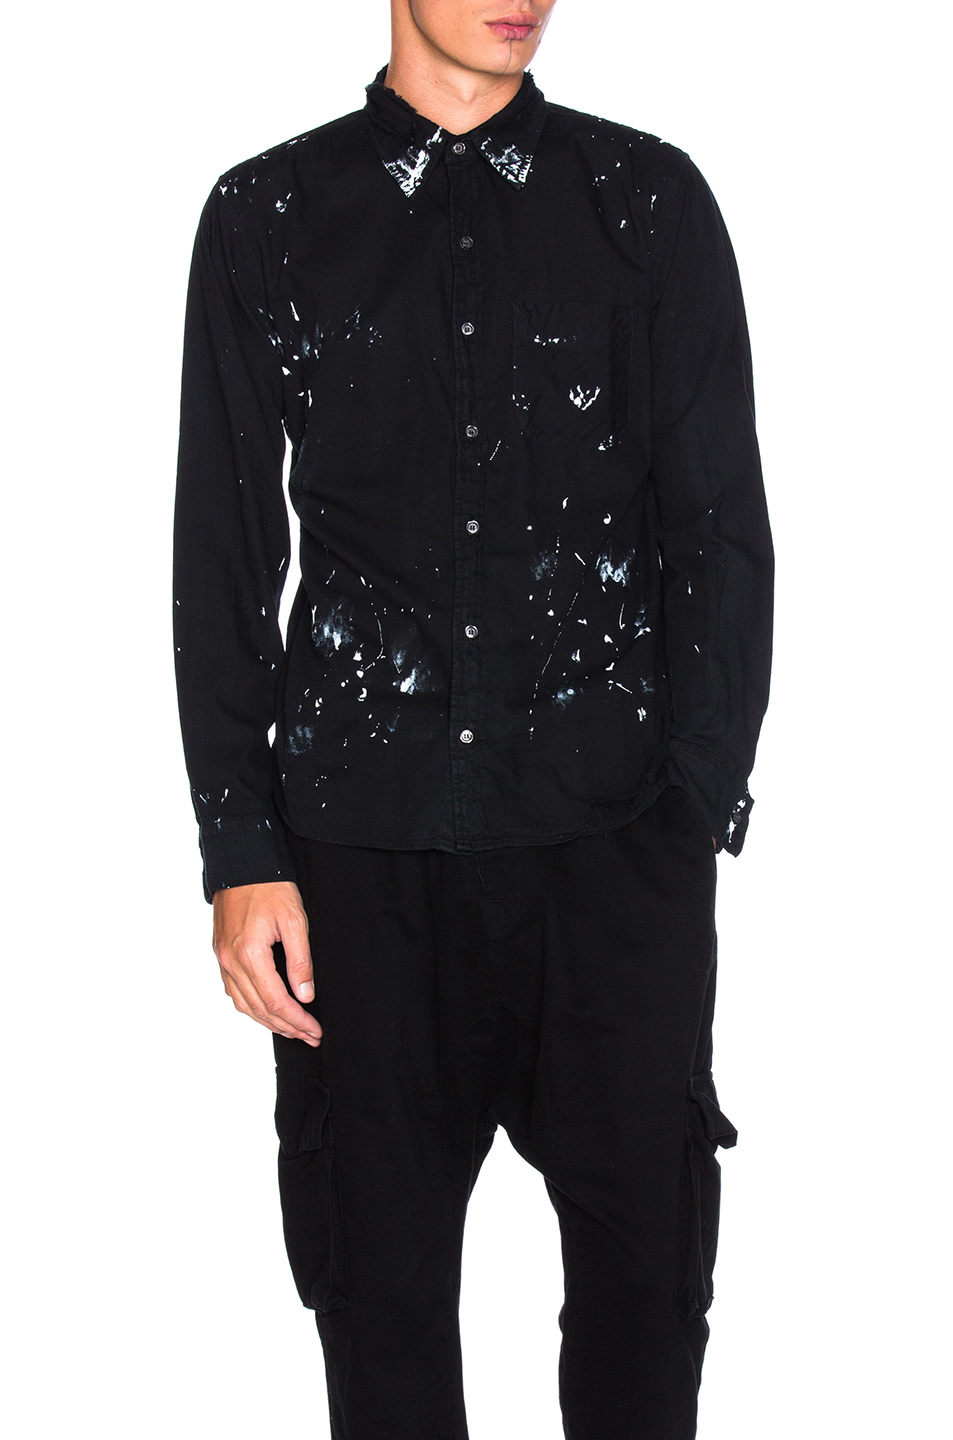 NSF Axel Shirt in Black